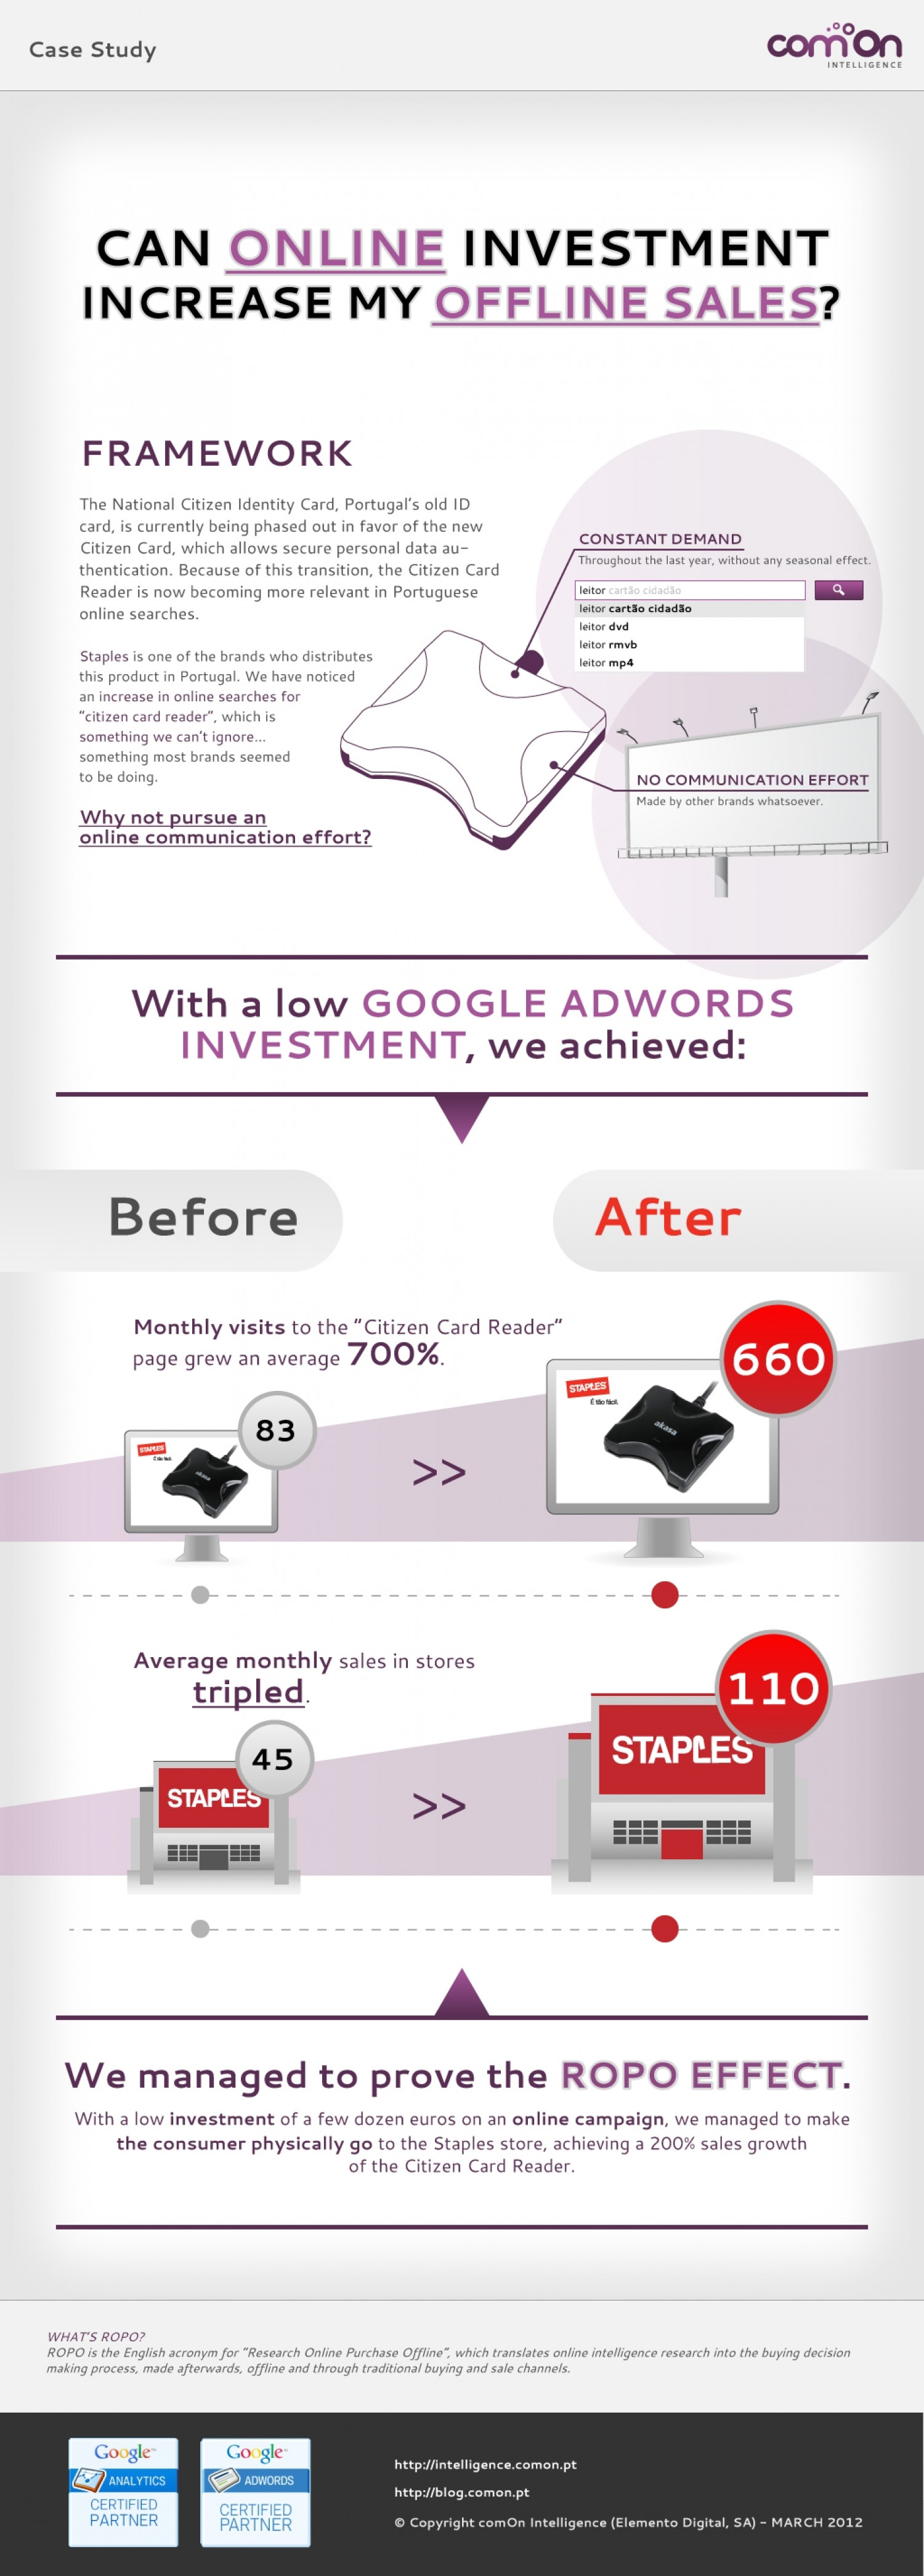 From Online Marketing to Offline Sales - Staples Case Study Infographic